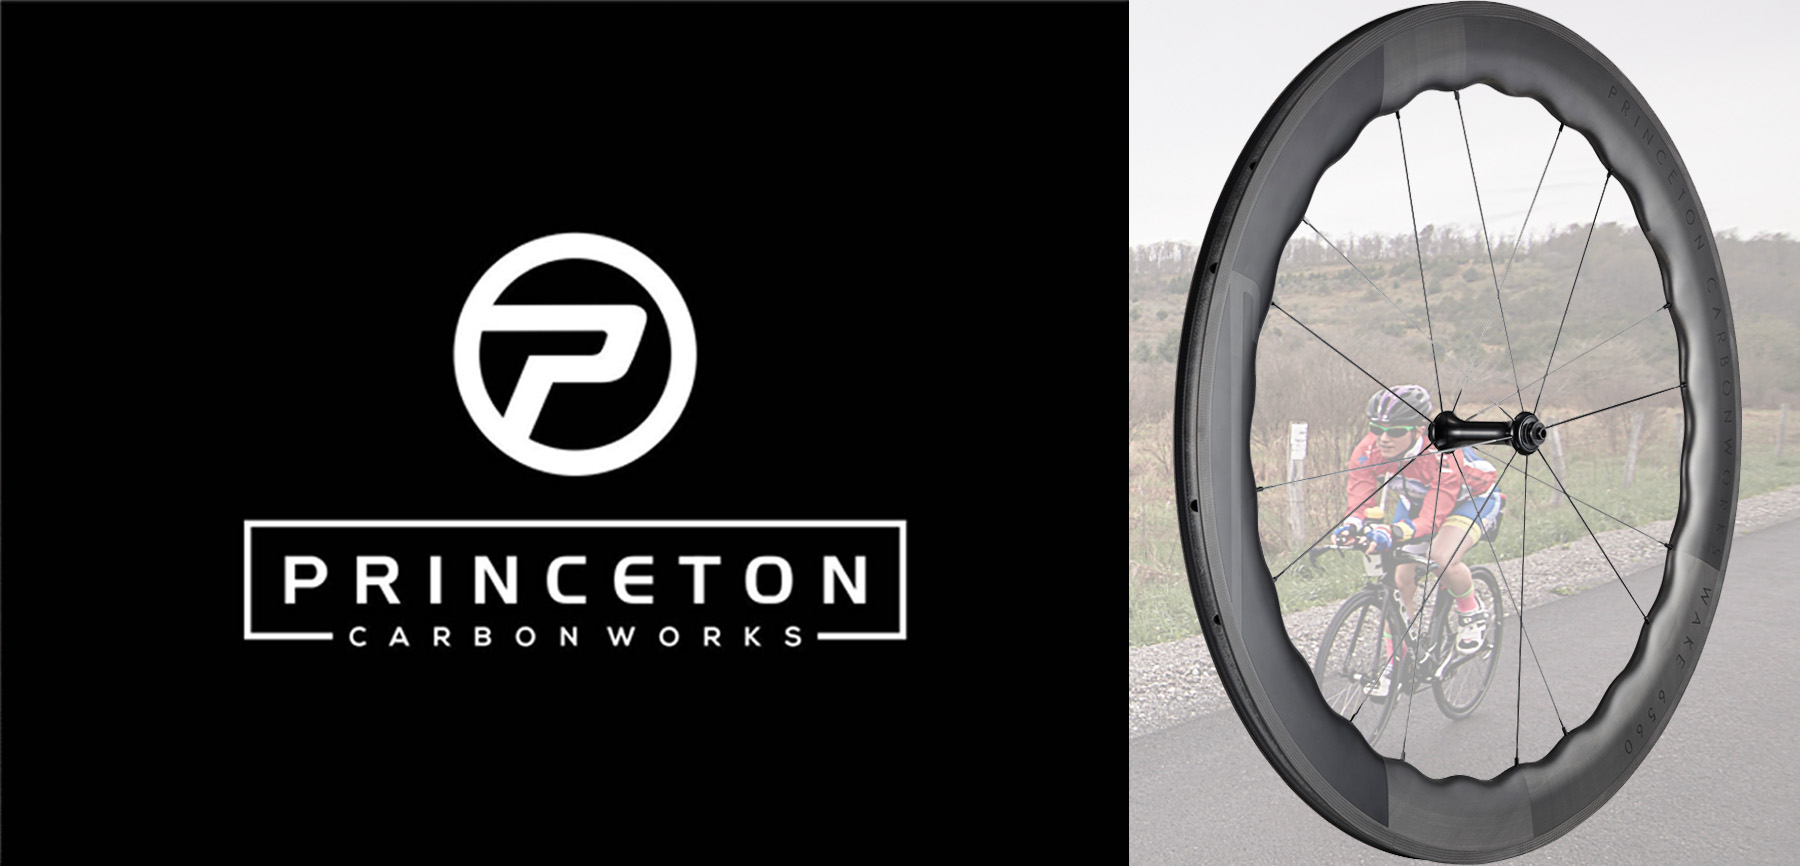 NEW Club Partner: Princeton Carbon